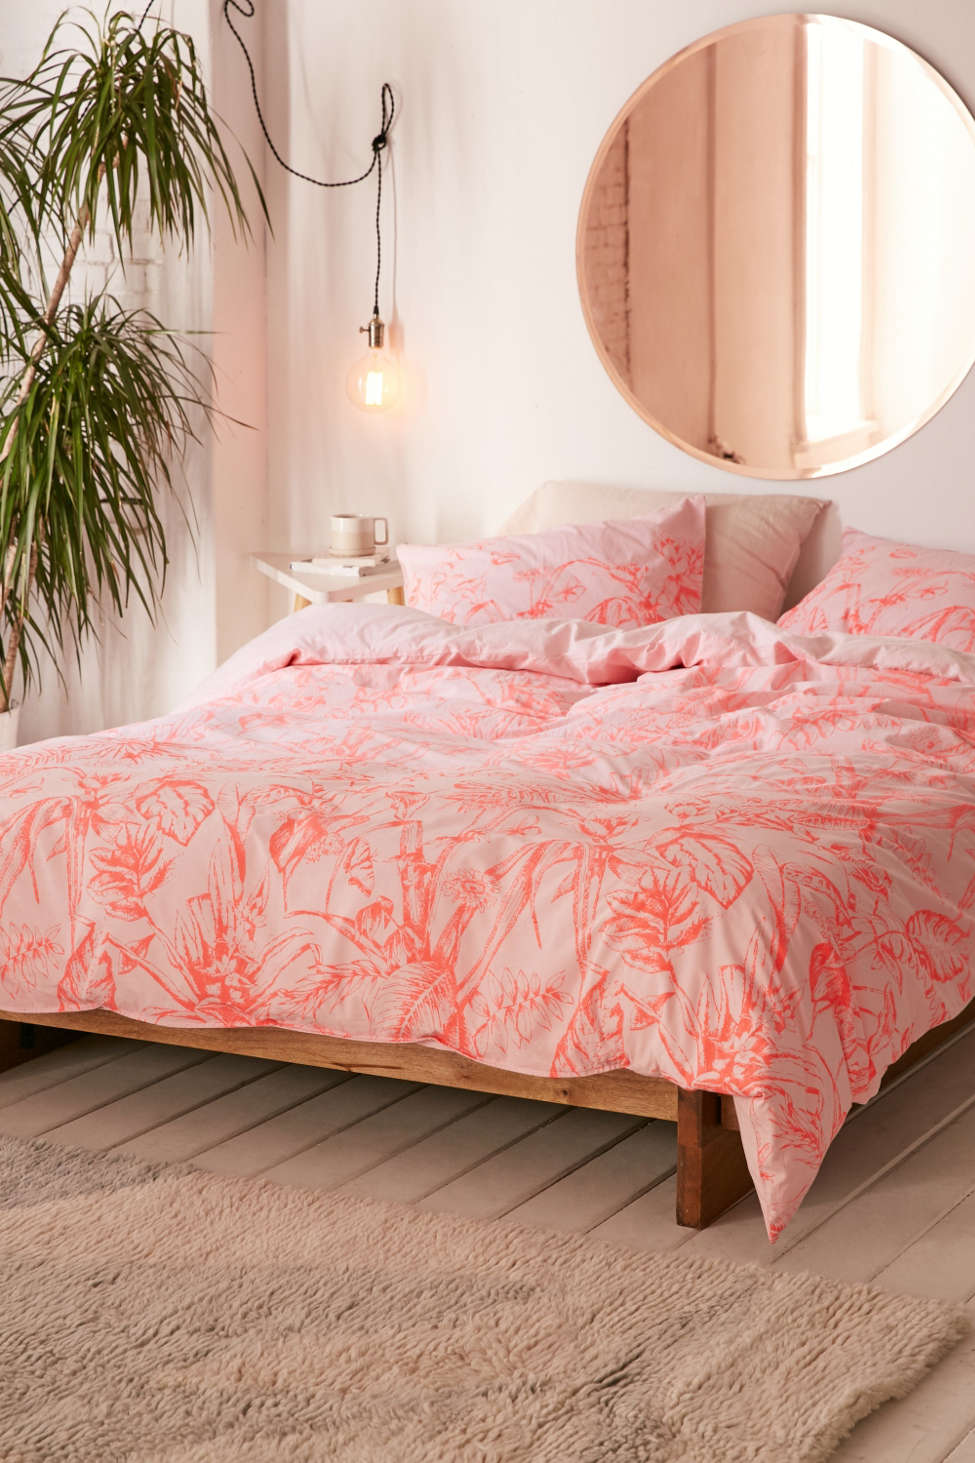 Slide View: 2: Forest Toile Duvet Cover